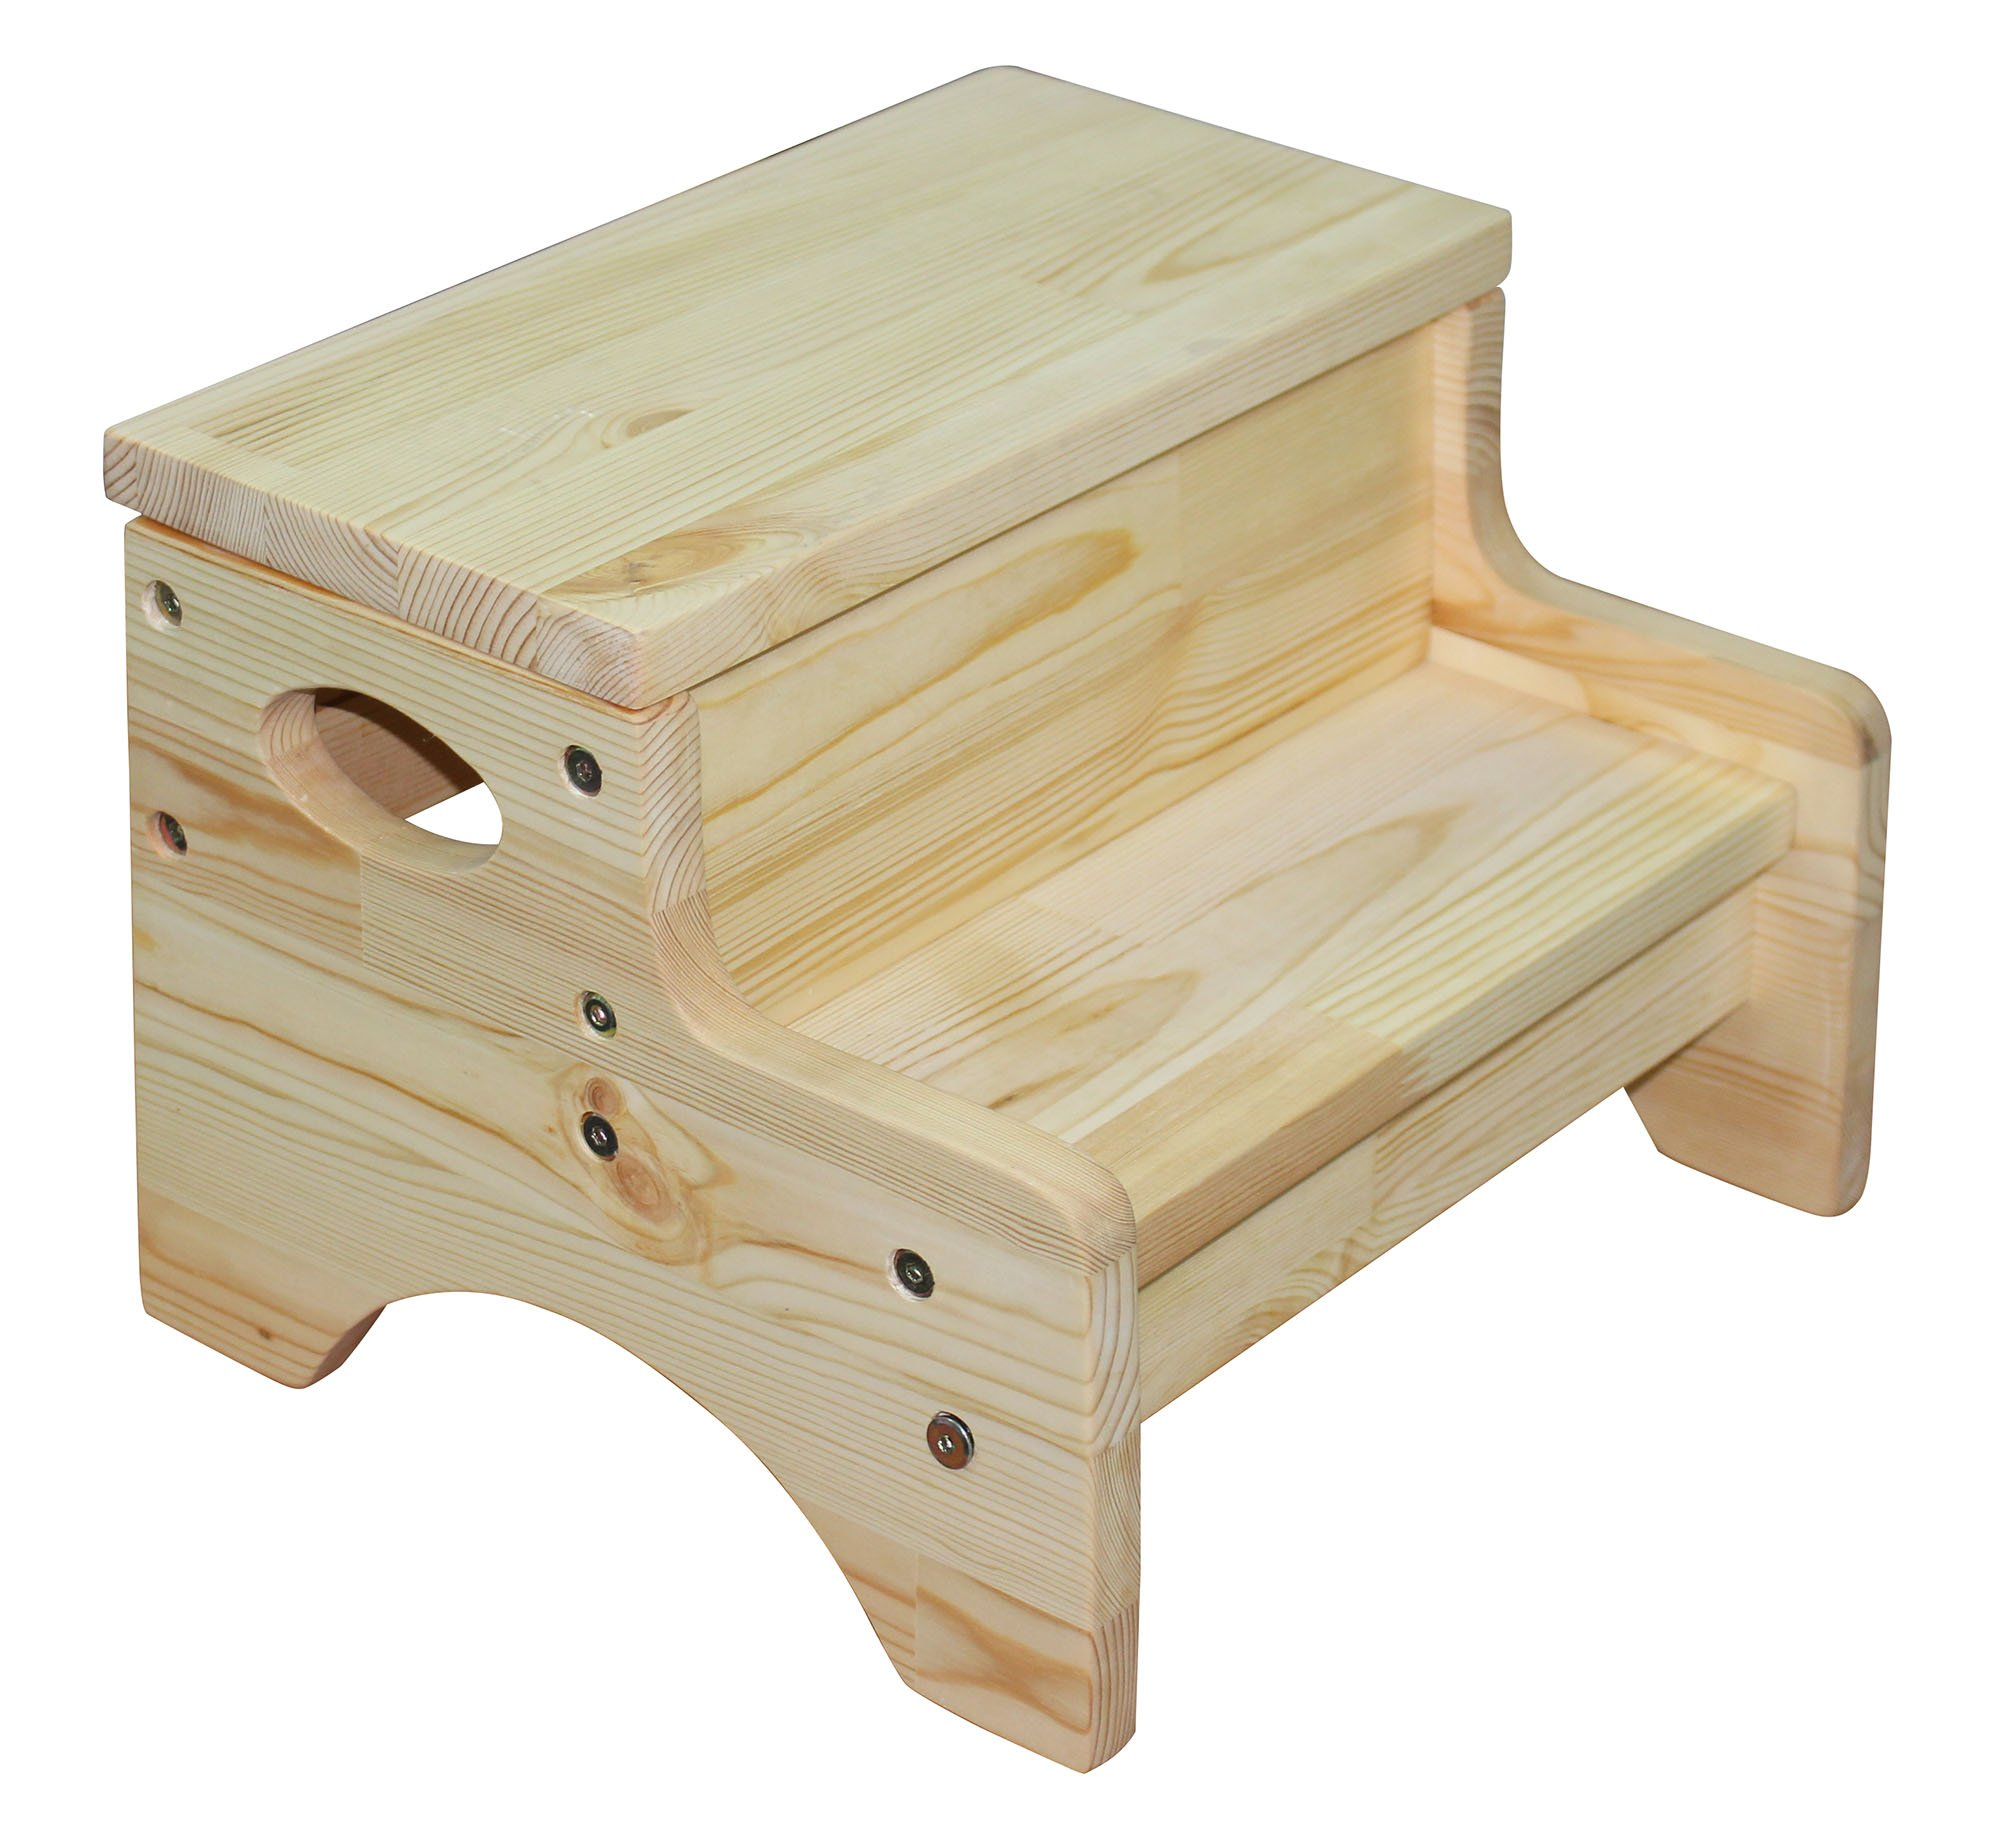 Chunmei Solid Wooden Two Step Stool for Toddler's Potty Training Toddler's Stool for Potty Training and Use in the Bathroom or Kitchen